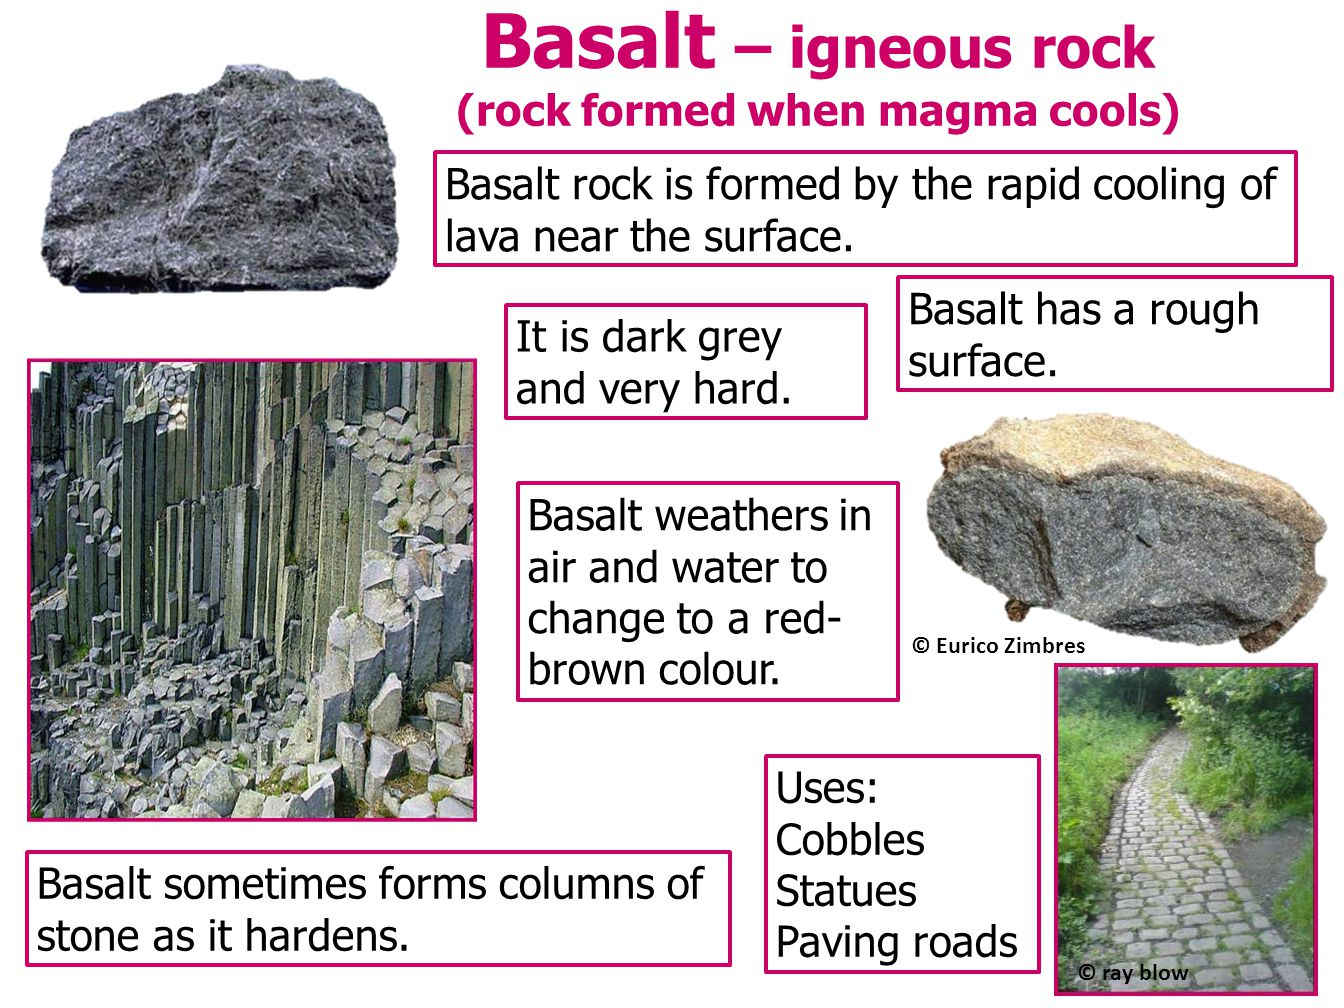 Basalt – igneous rock (rock formed when magma cools)